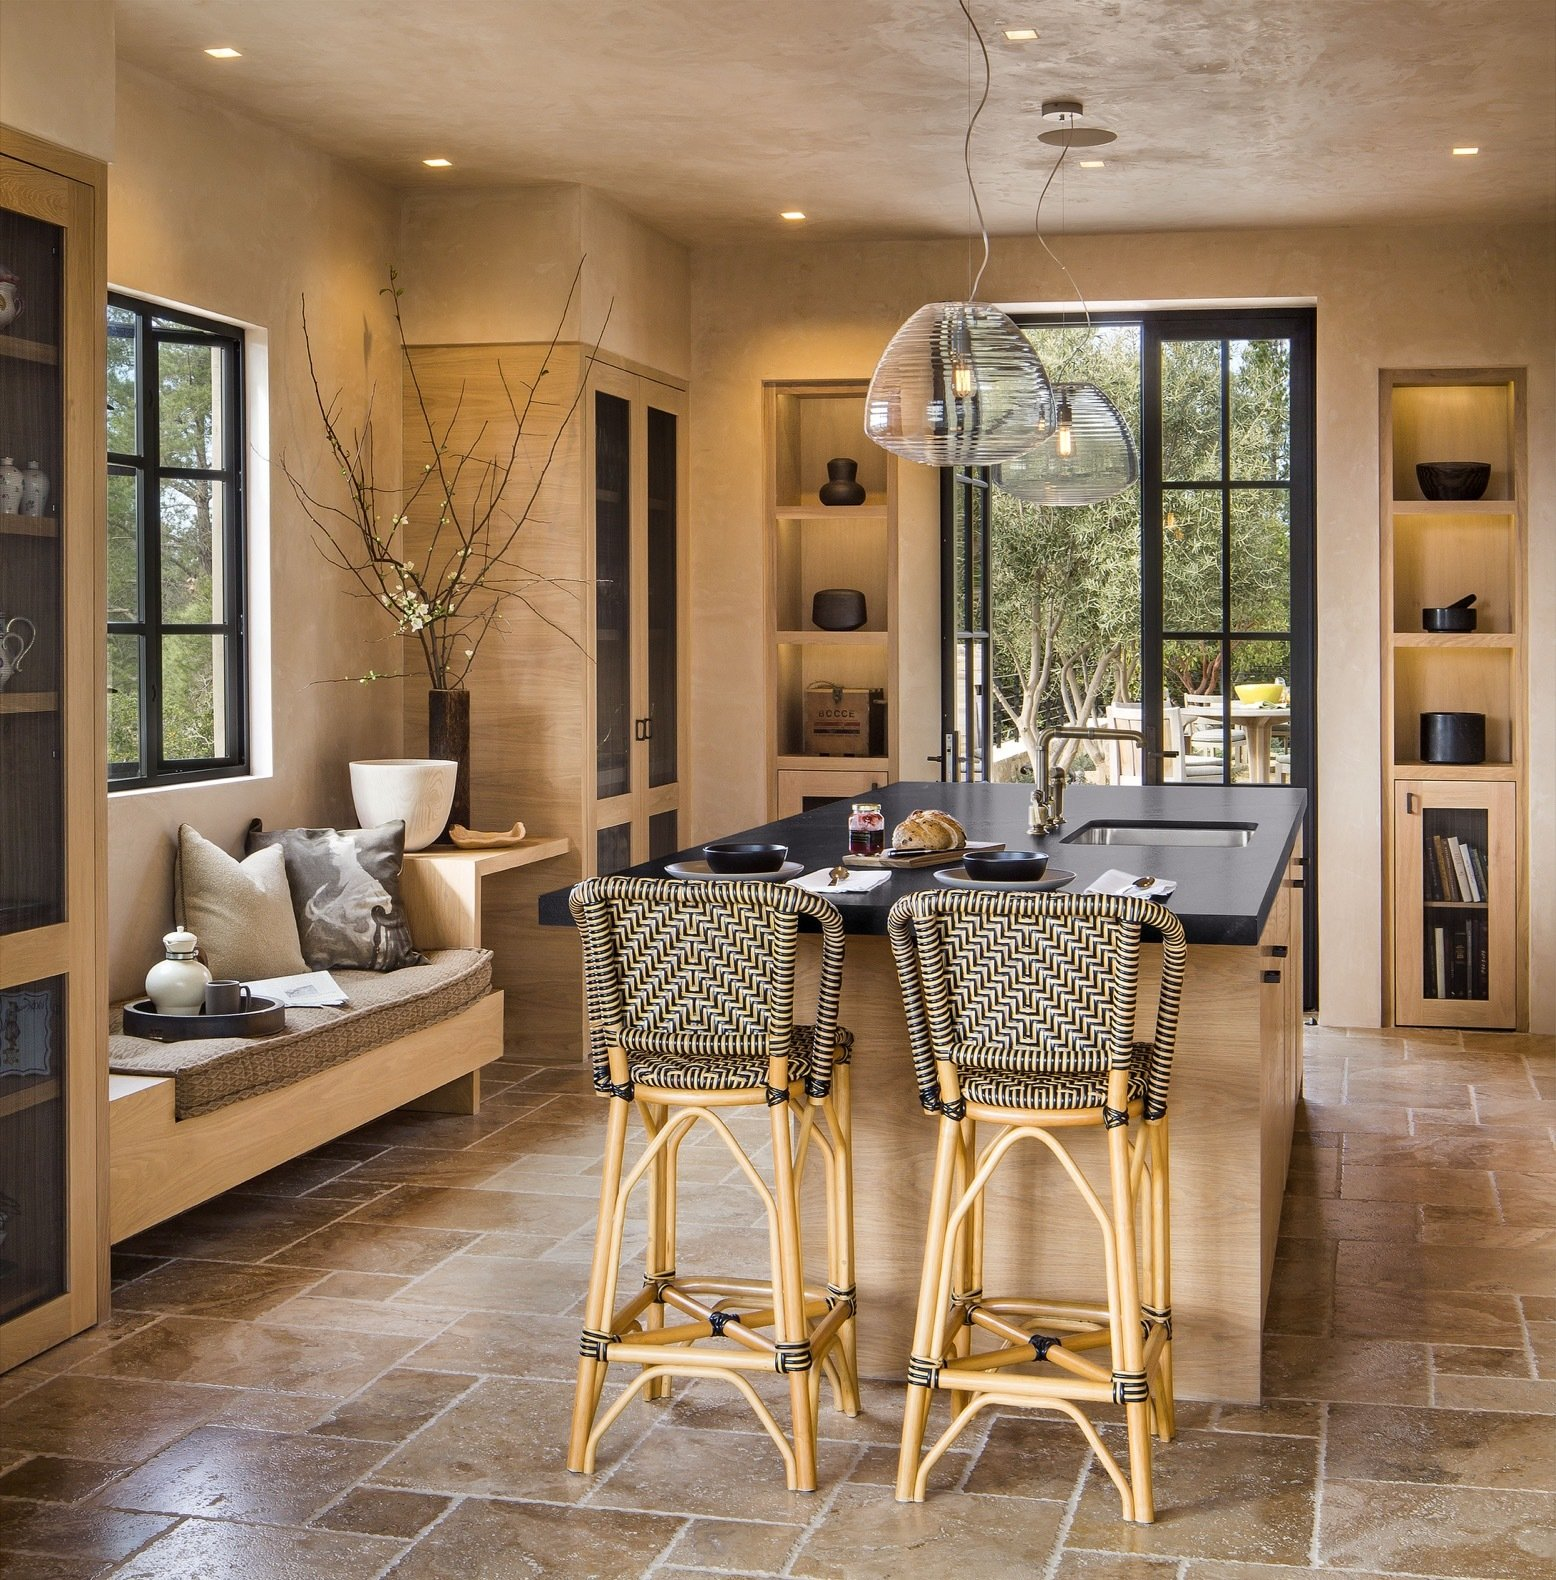 Undermount Lighting For Kitchen Cabinets: Photo 12 Of 15 In Glass And Stone Combine To Dazzling